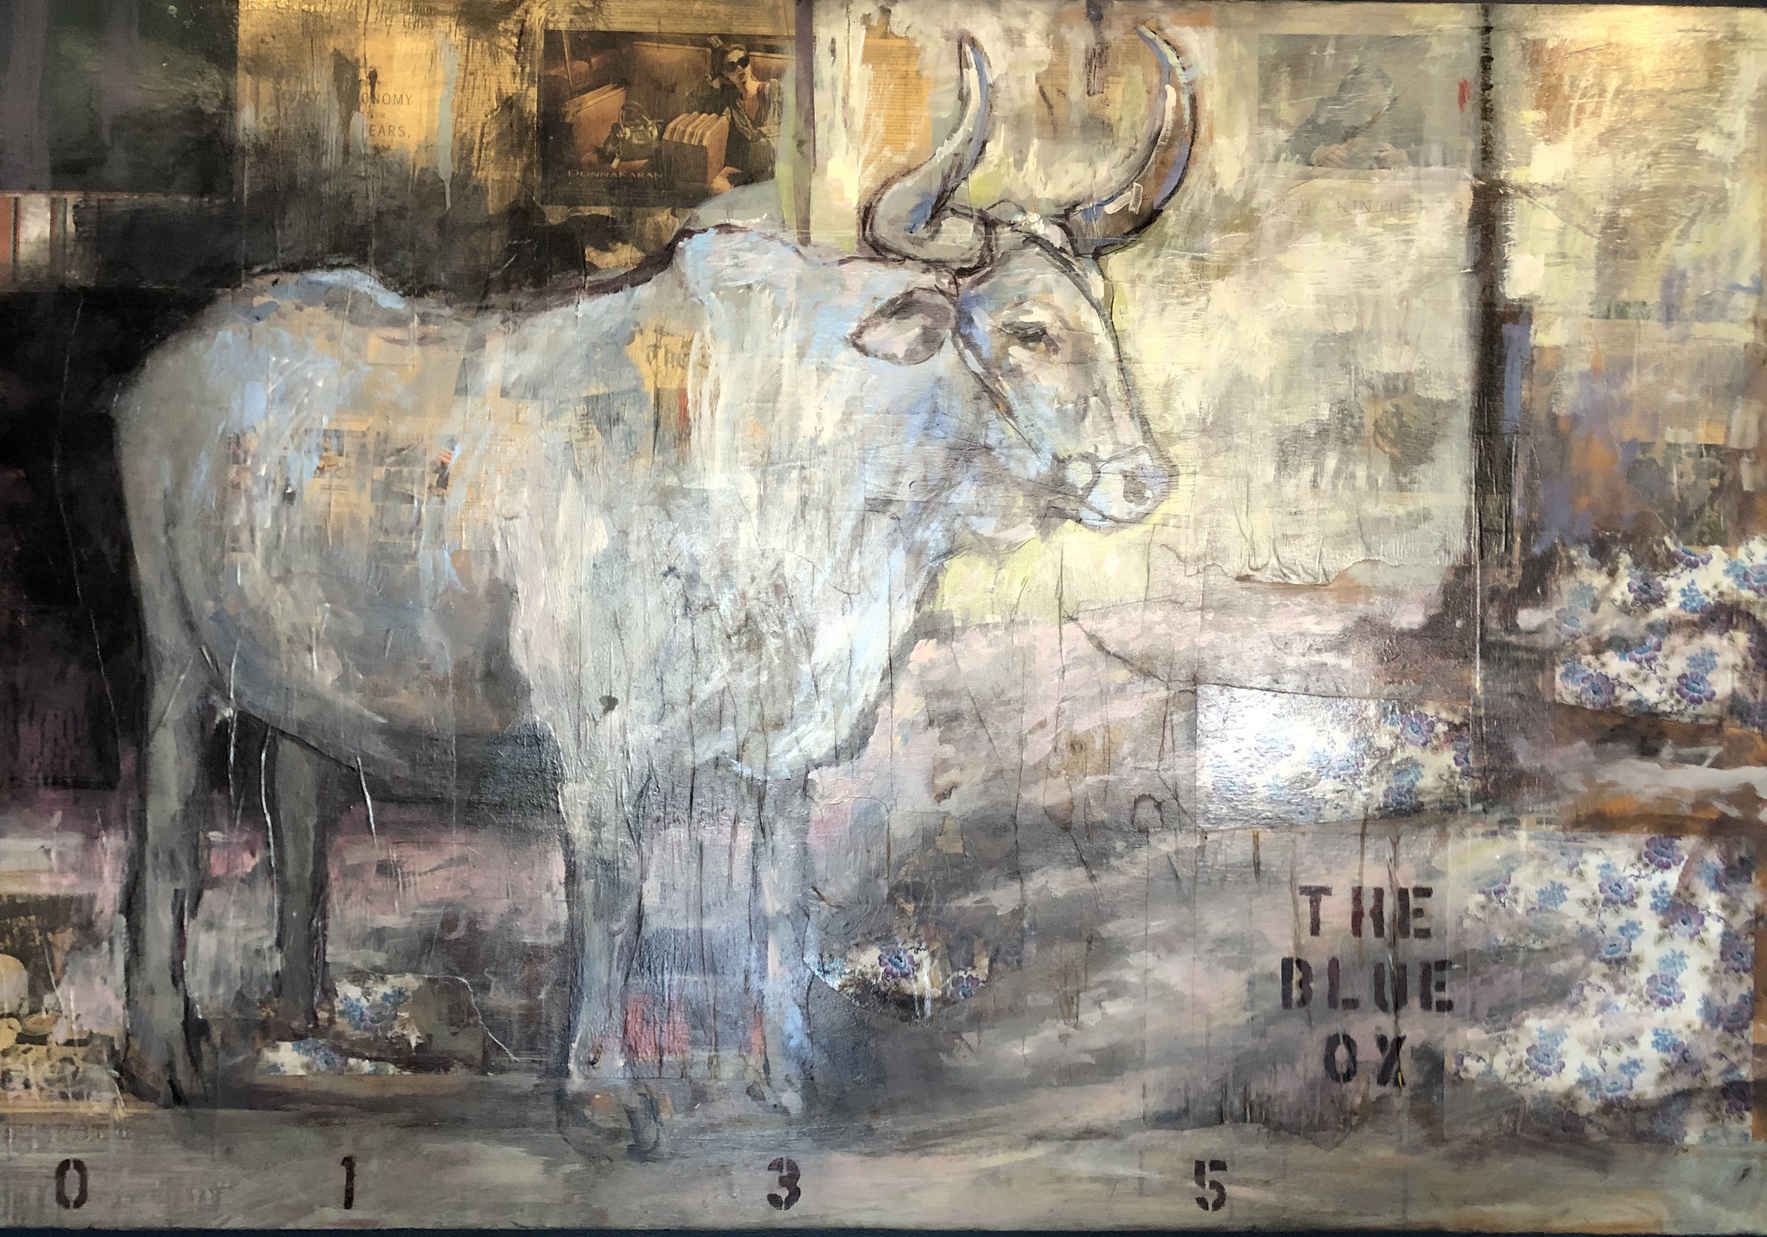 A Night at the Blue Ox image